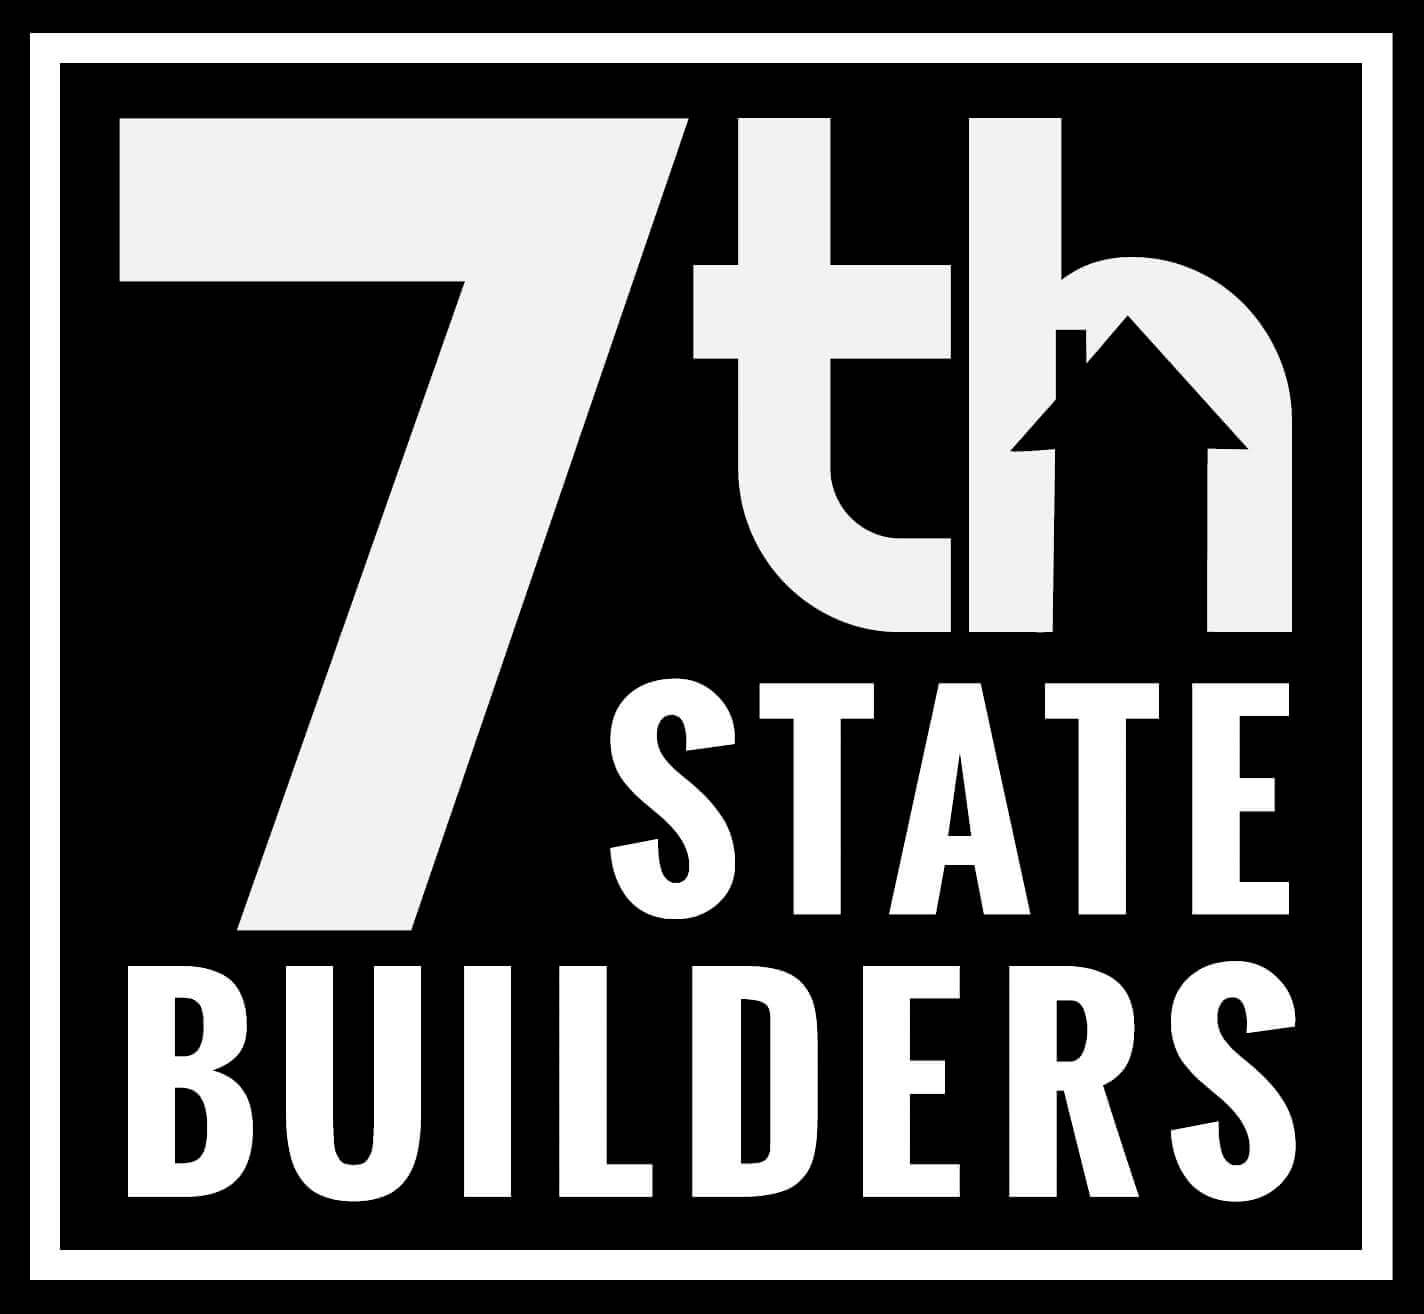 7th State Builders Logo (black background)